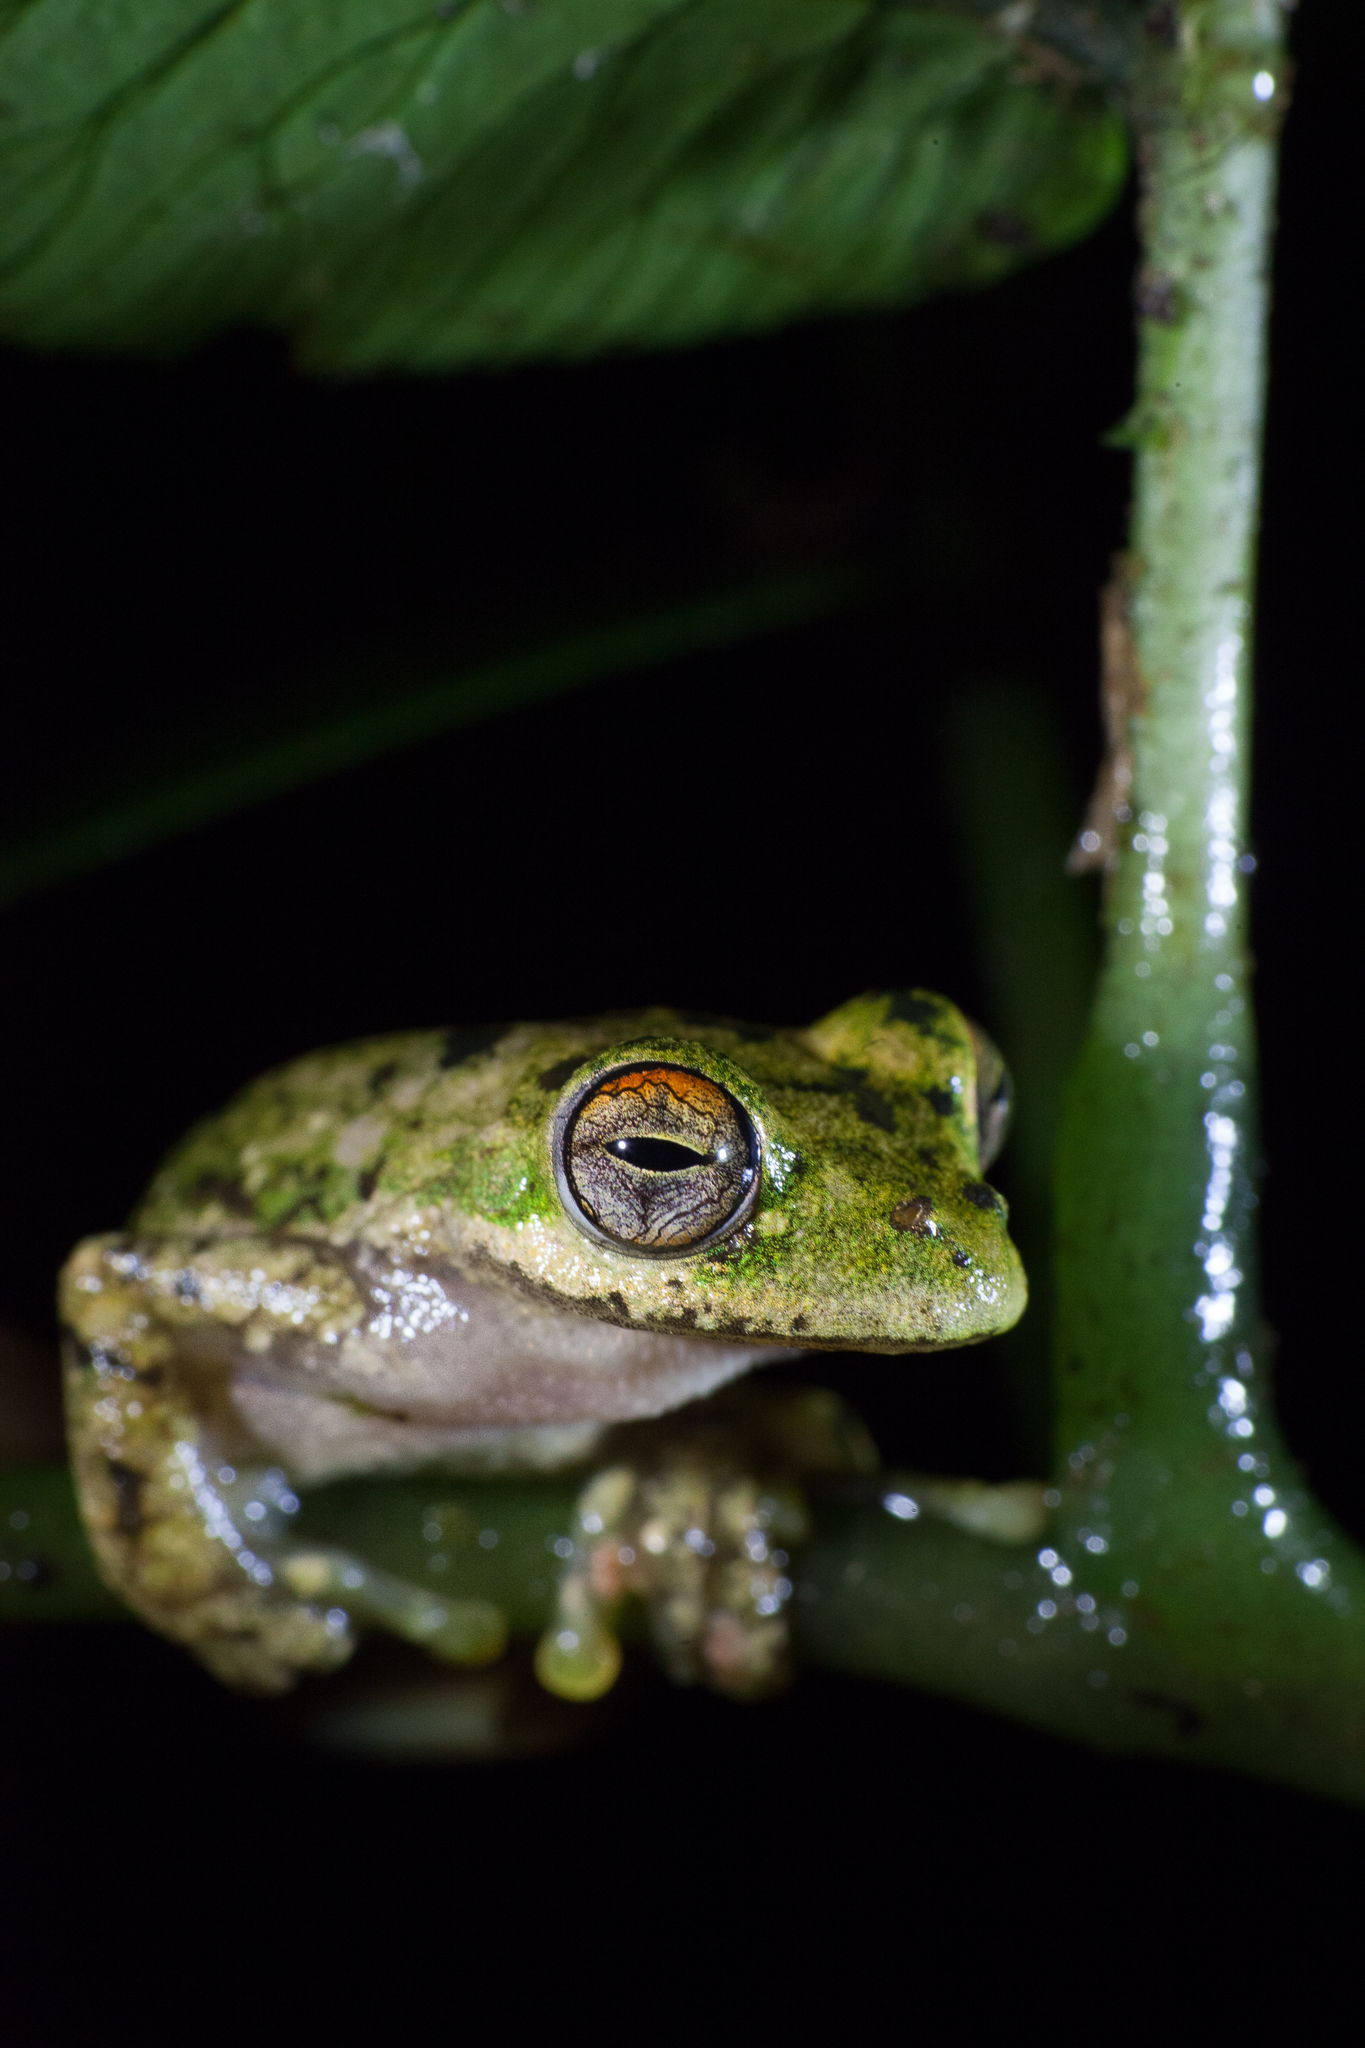 Although listed as near-threatened, this tree frog (Ecnomiohyla miotympanum) is relatively common in the cloud forests around Veracruz, Mexico.